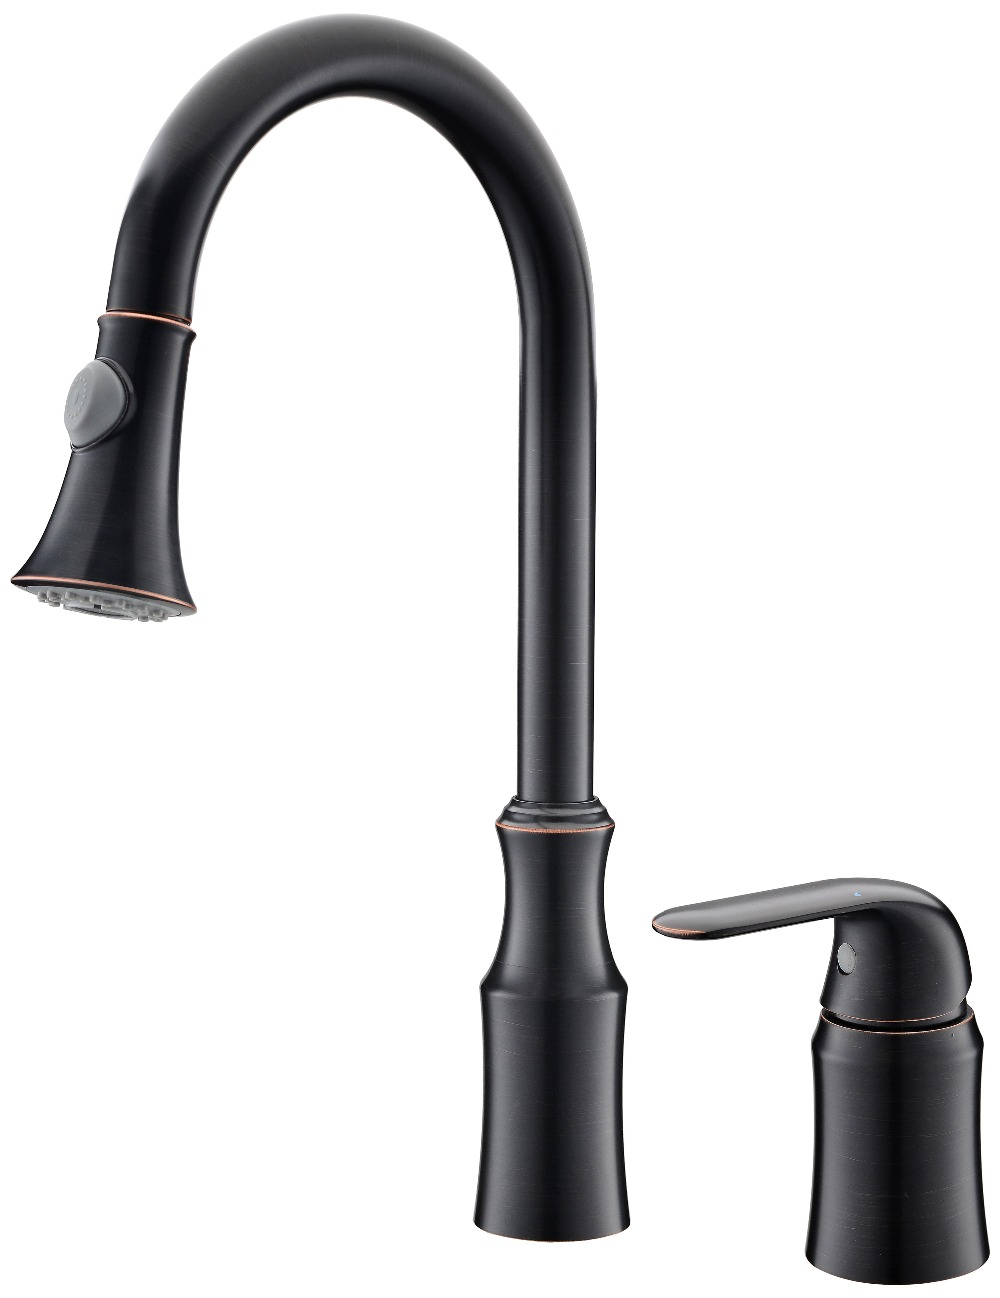 ORB black Single Handle Pull-out Kitchen Faucet mixer tap widespread 2 Holes deck mounted only ship to U.S ADDRESSORB black Single Handle Pull-out Kitchen Faucet mixer tap widespread 2 Holes deck mounted only ship to U.S ADDRESS